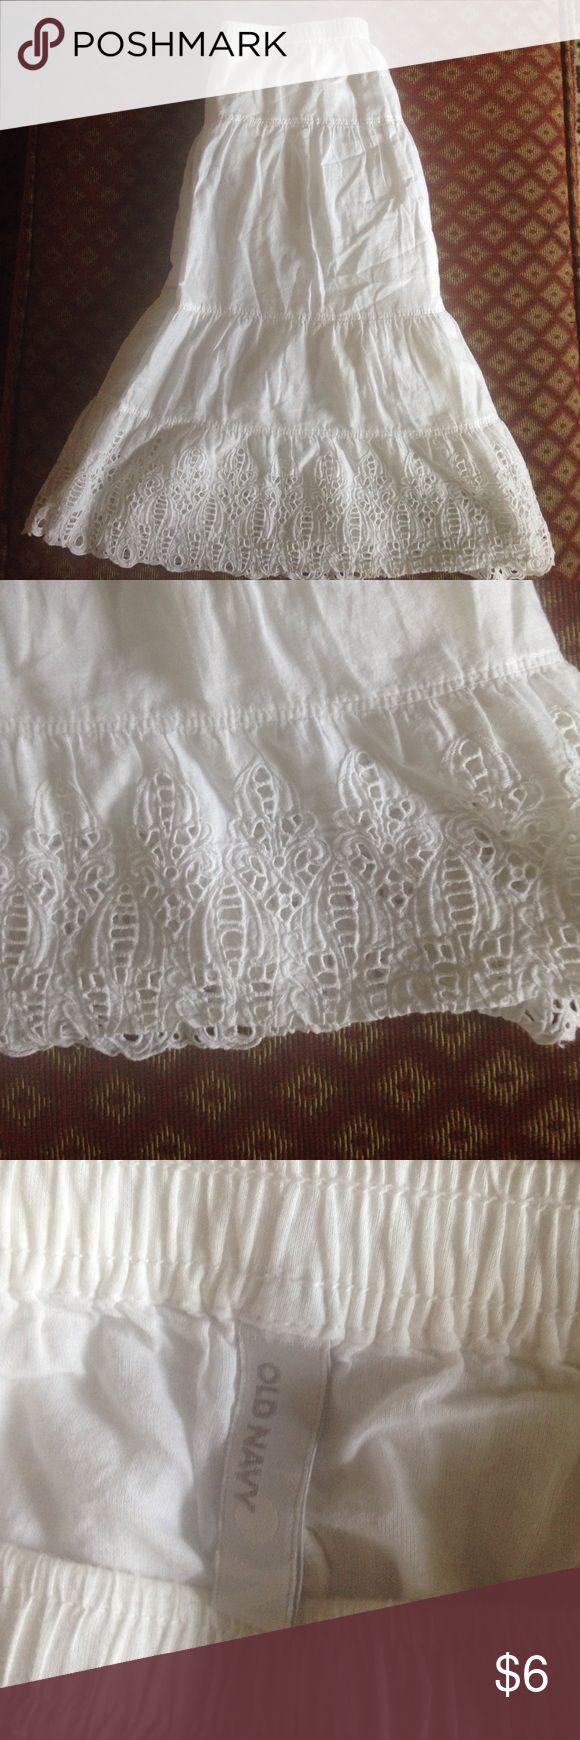 💎bundle 4 for $20💎. Old navy skirt Cute elastic waisted white cotton skirt with lace bottom. Old Navy Skirts